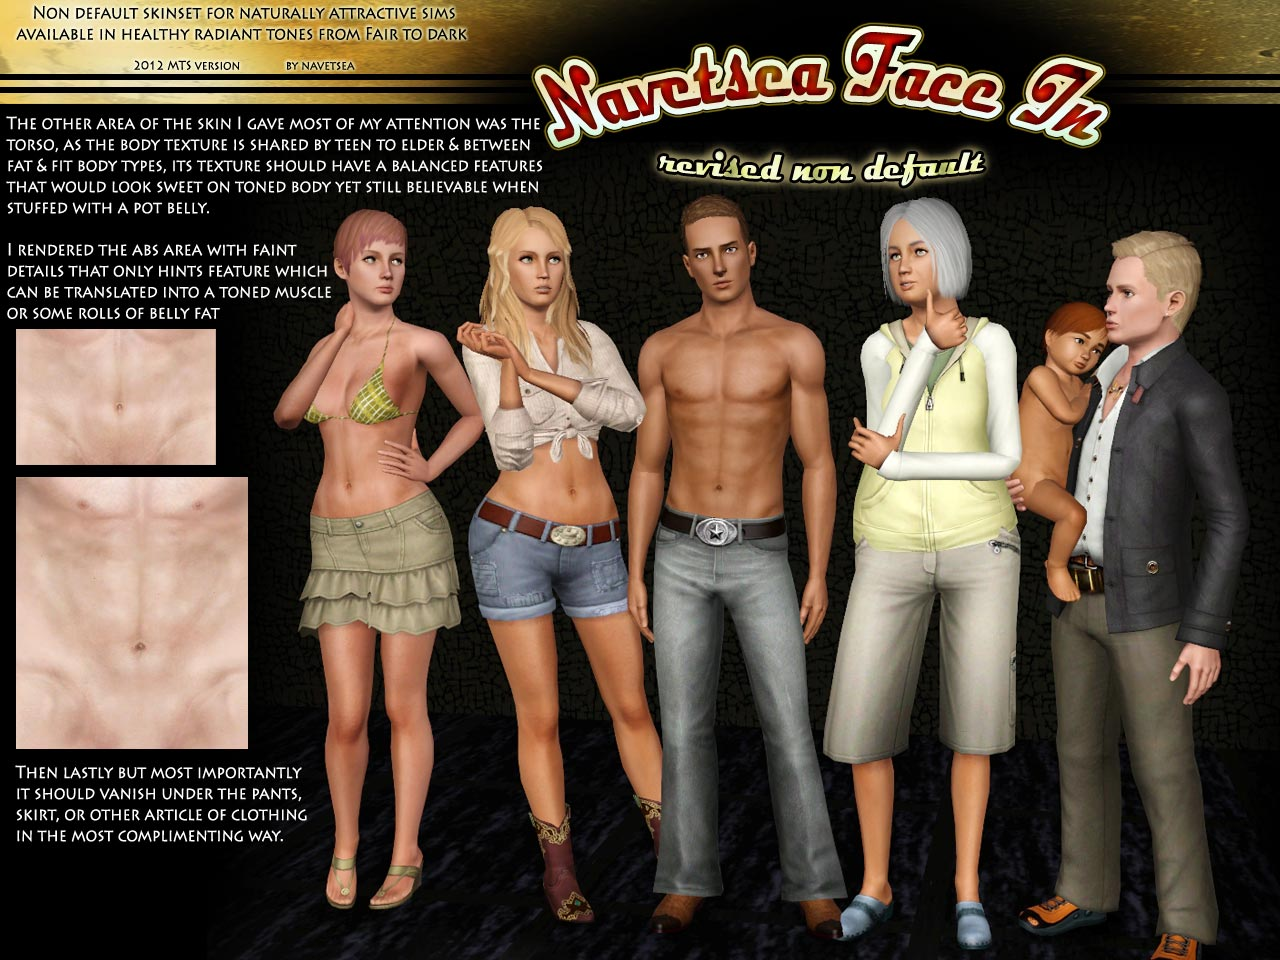 Sims 2 realistic default reaplcement skins hentia pic